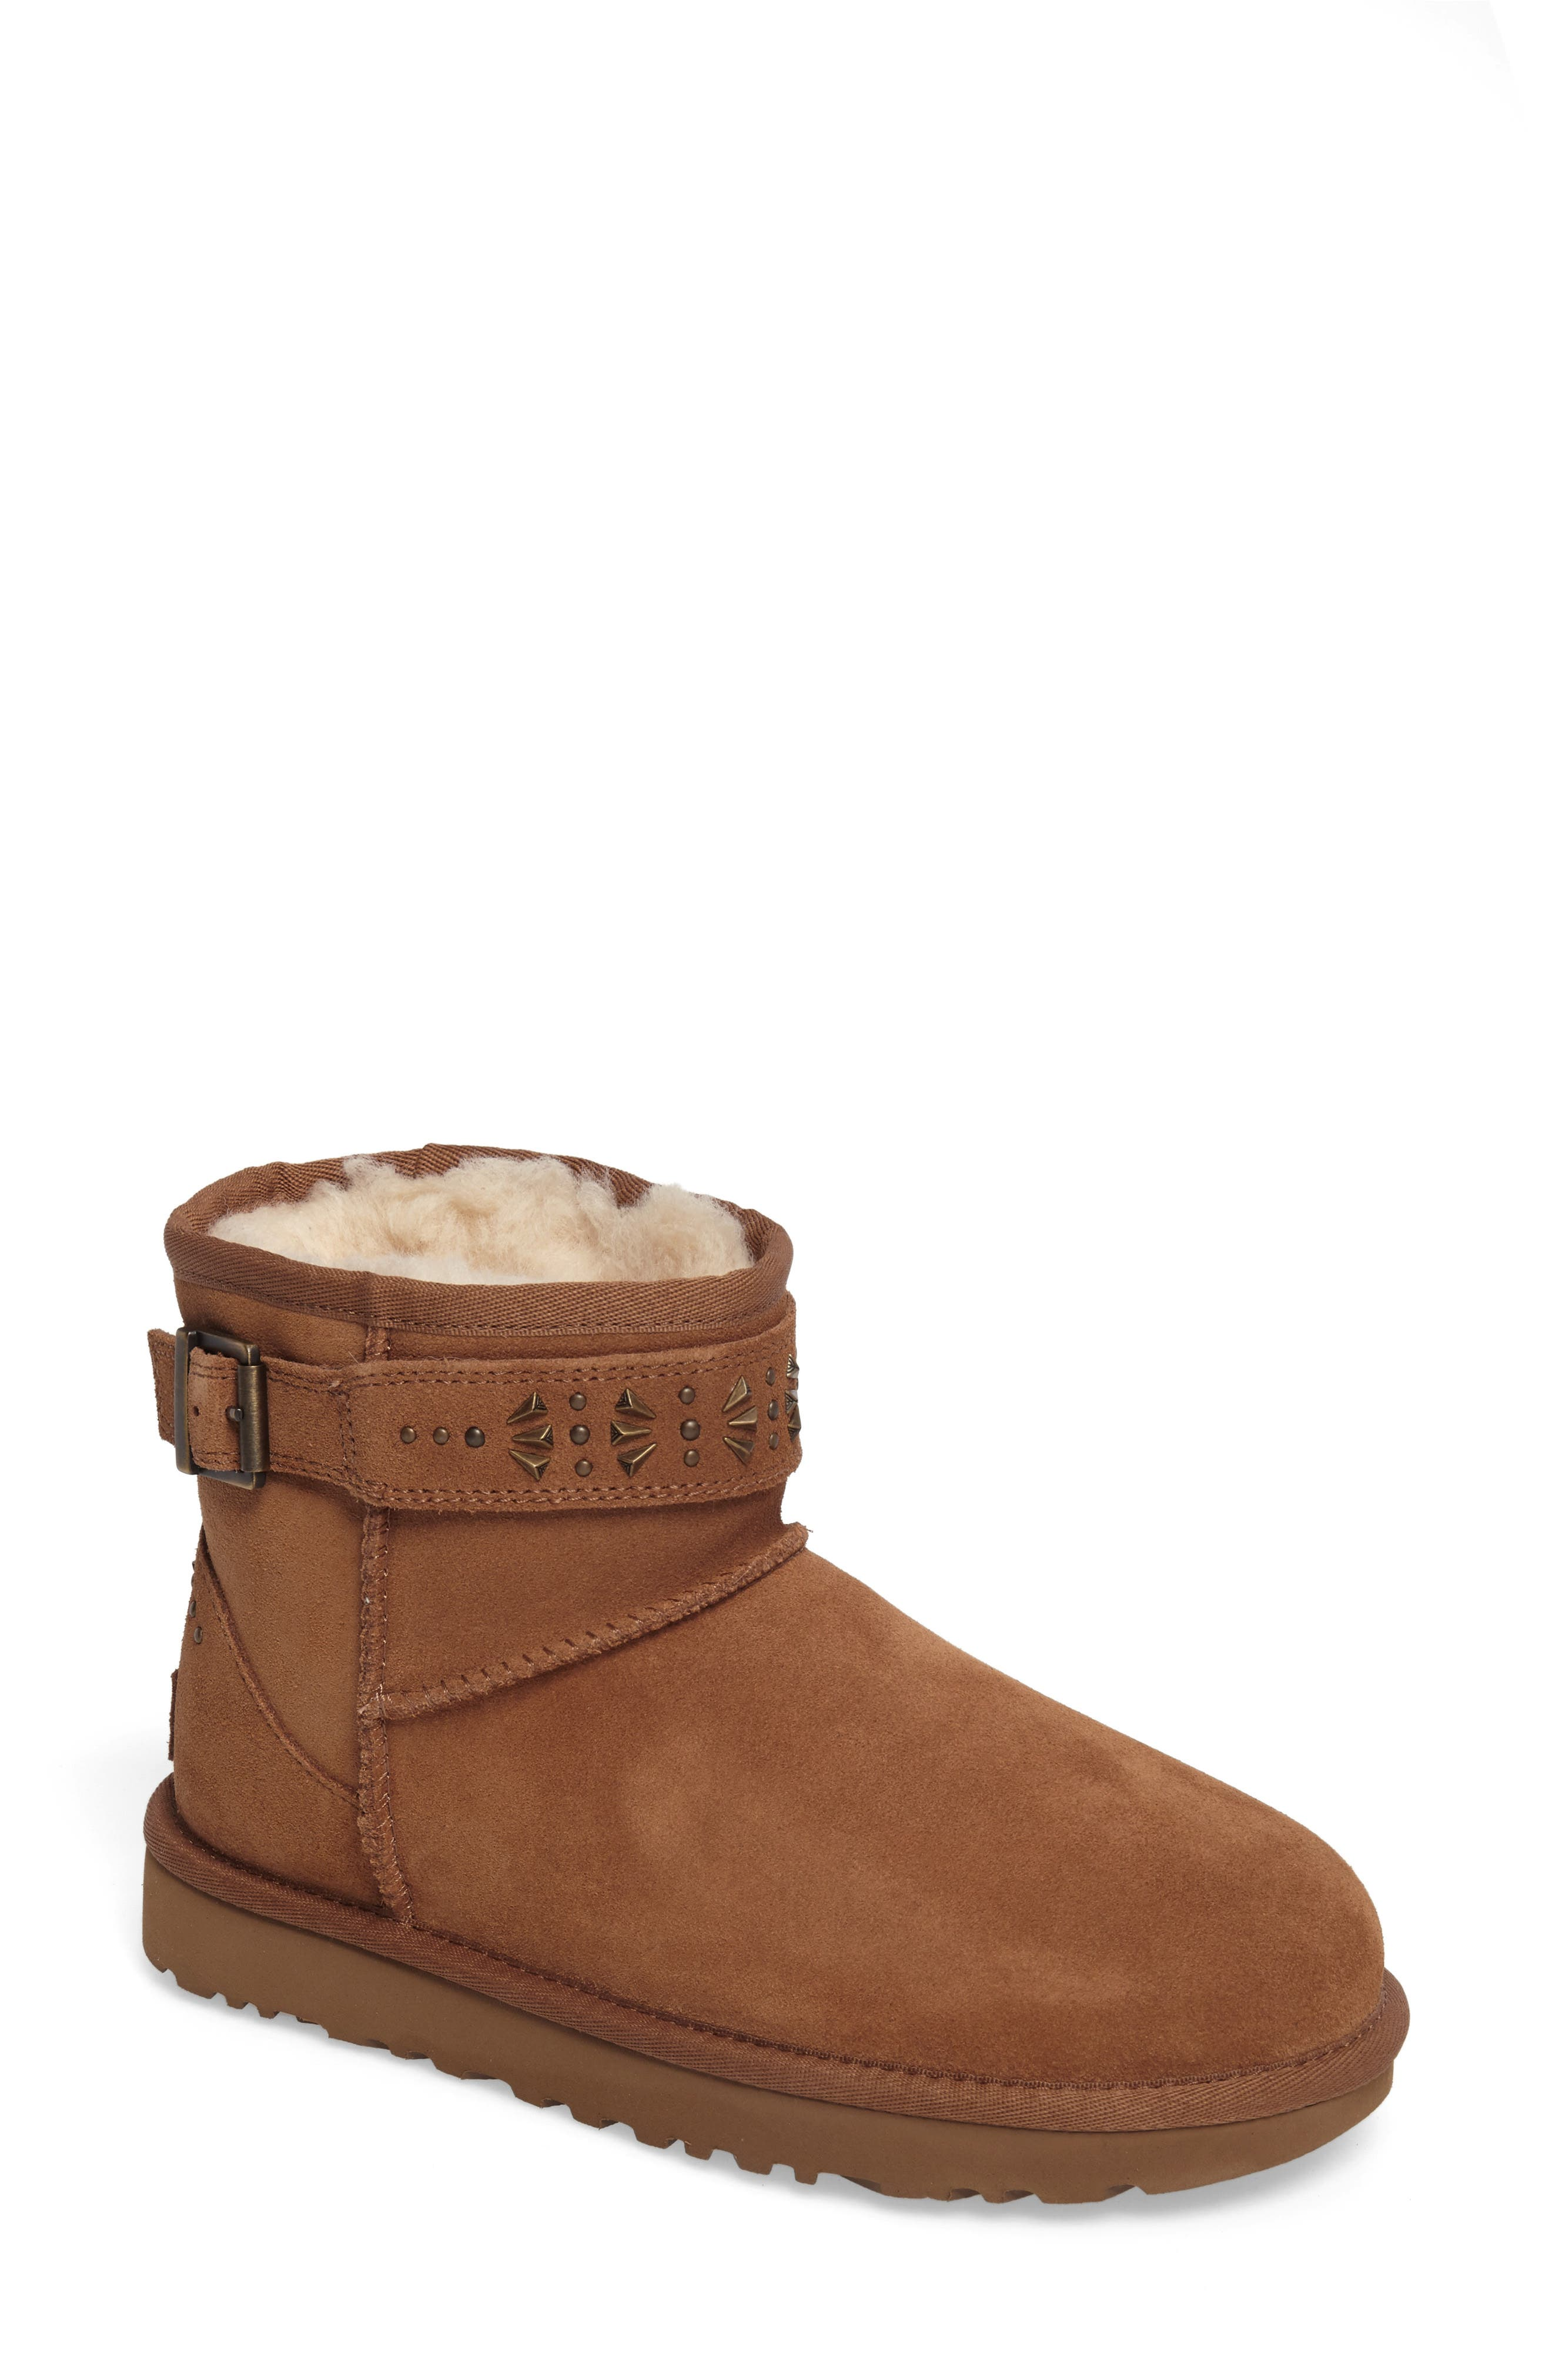 Jadine Boot,                         Main,                         color, Chestnut Suede